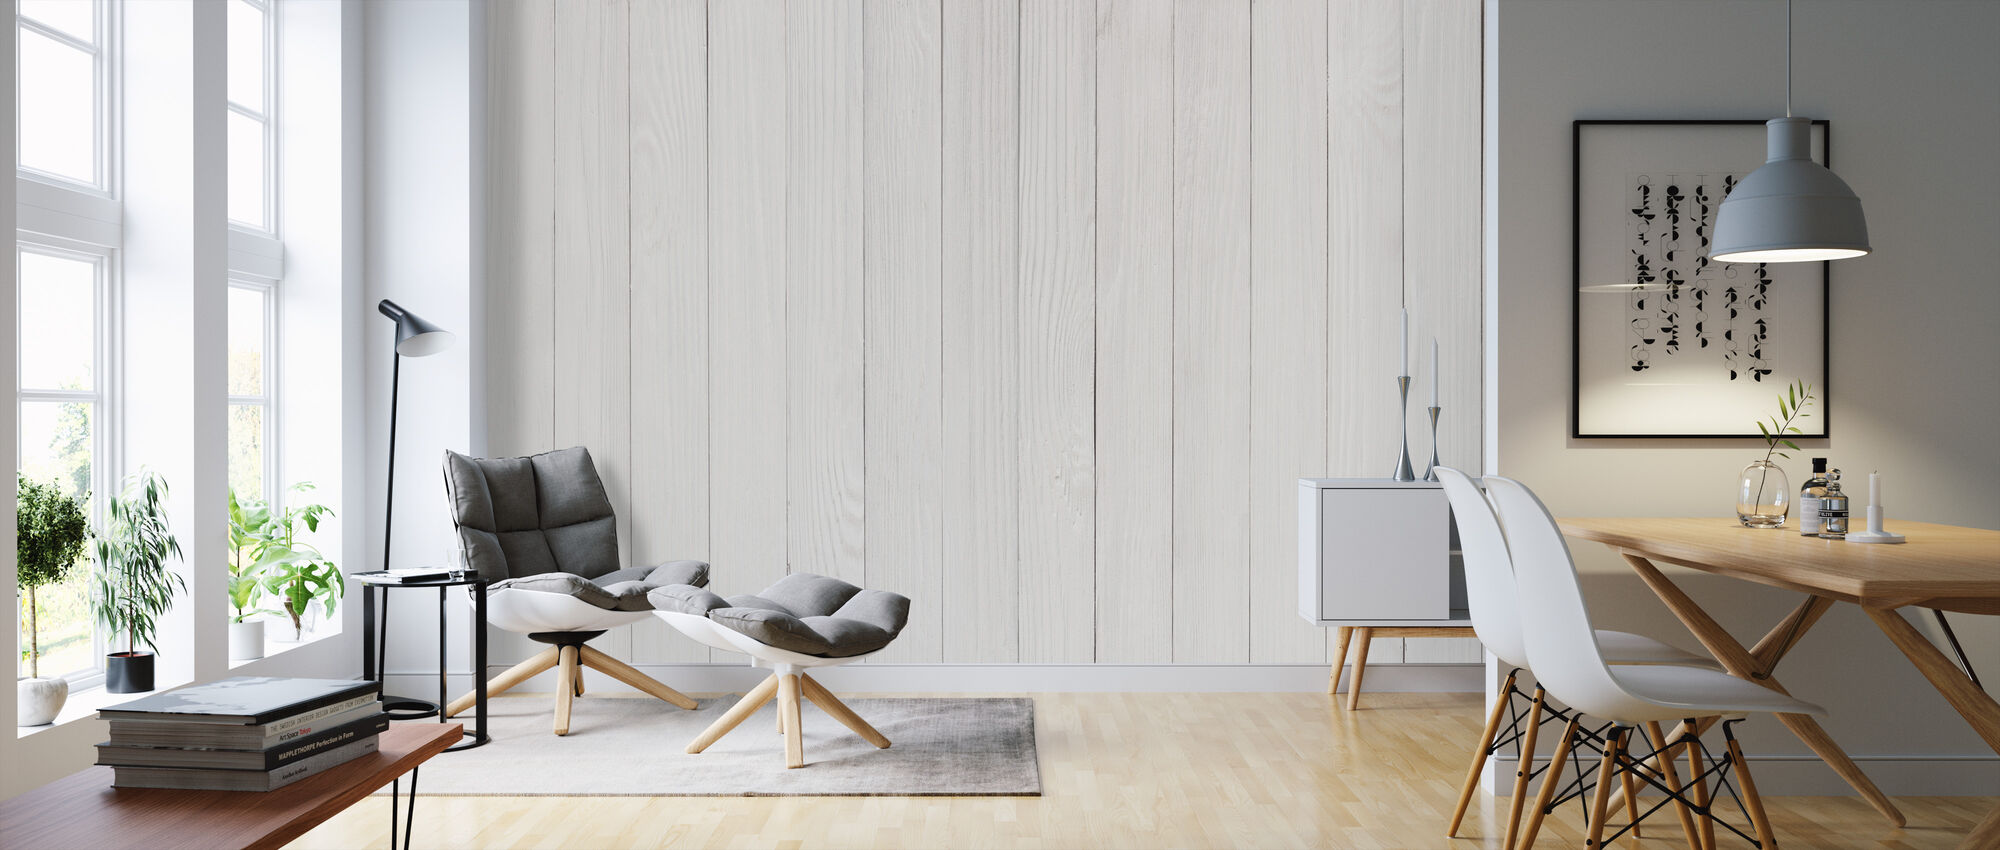 Wooden Table - Wallpaper - Living Room